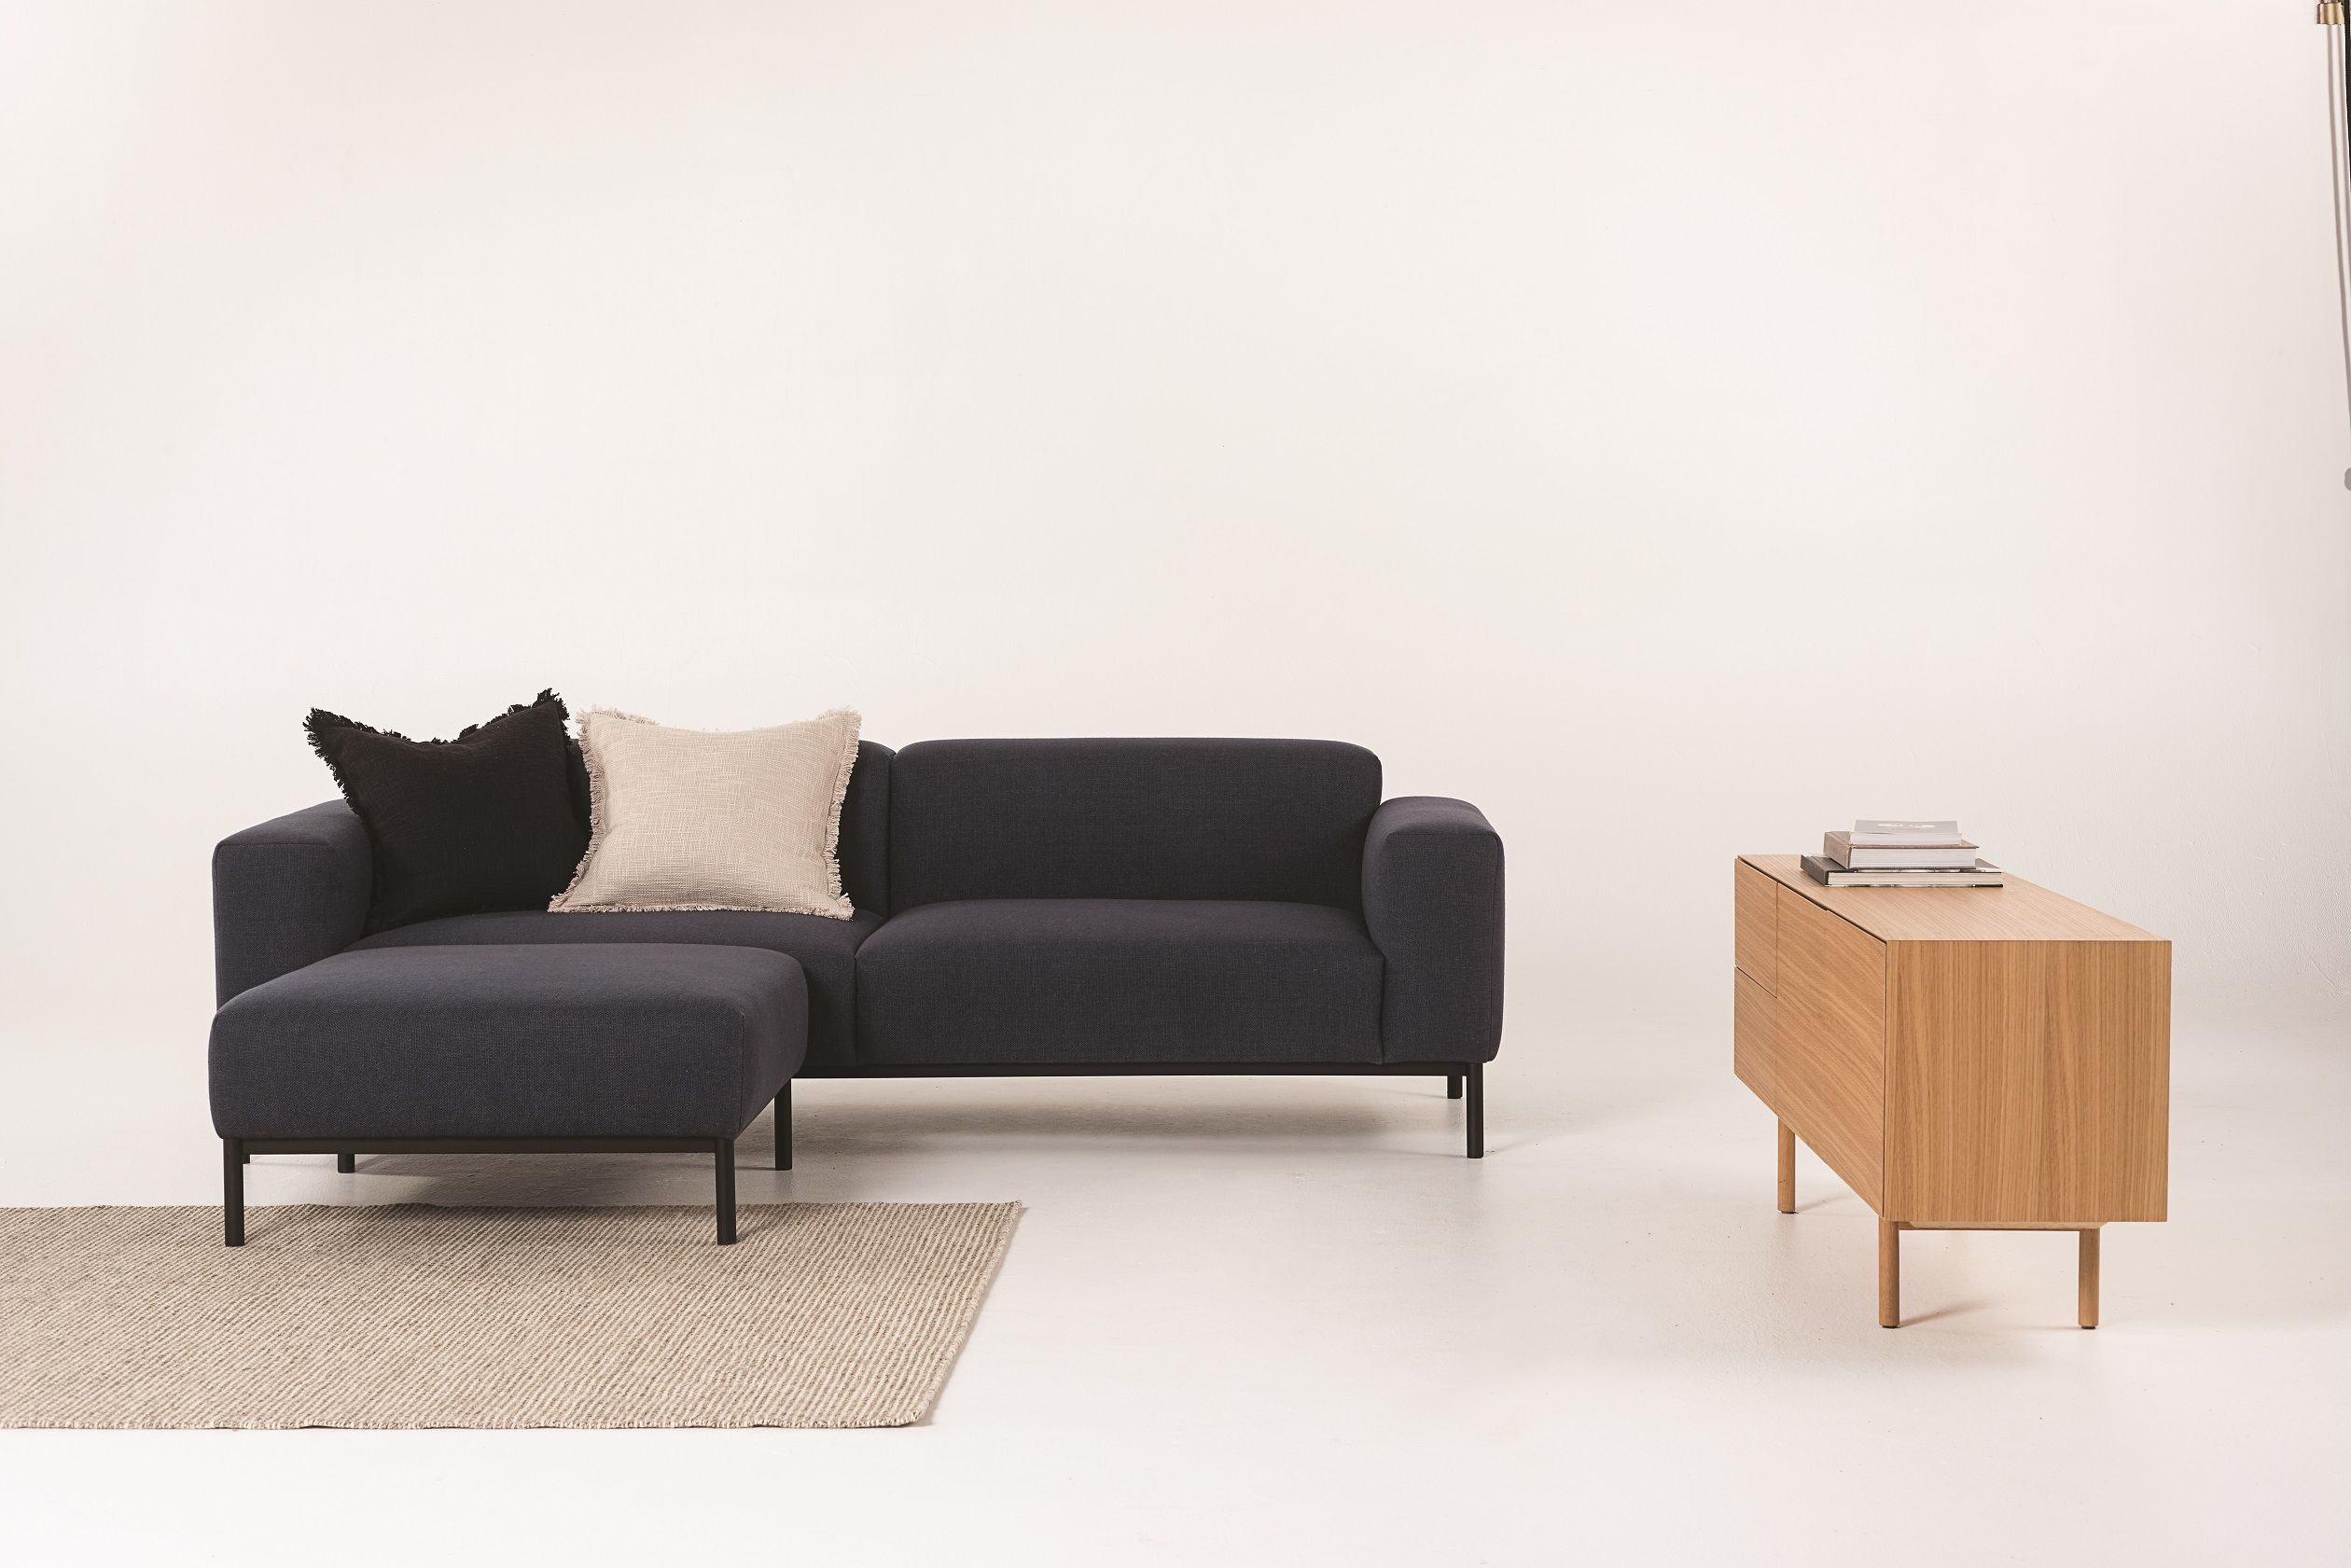 Hem Sofa With Metal Legs Nz Designed 2 3 Seaters In A Range Of Fabrics Furniture Sofa Sofa Armchair